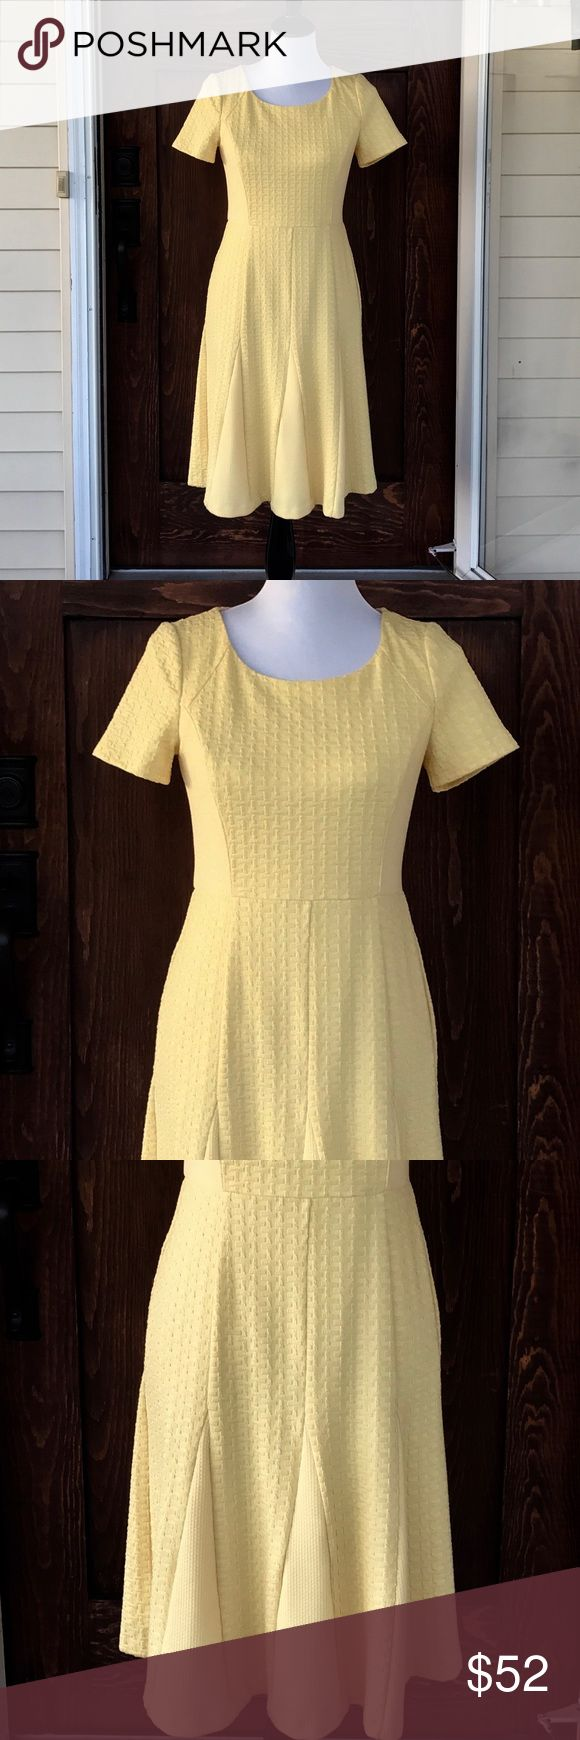 Talbots NWT yellow zip up back dress This dress is made out of the most amazing material- it's soft, thick, and stretchy. Fully lined and so flattering. Beautiful zip up back is a sexy touch to a classy dress. Talbots Dresses Midi